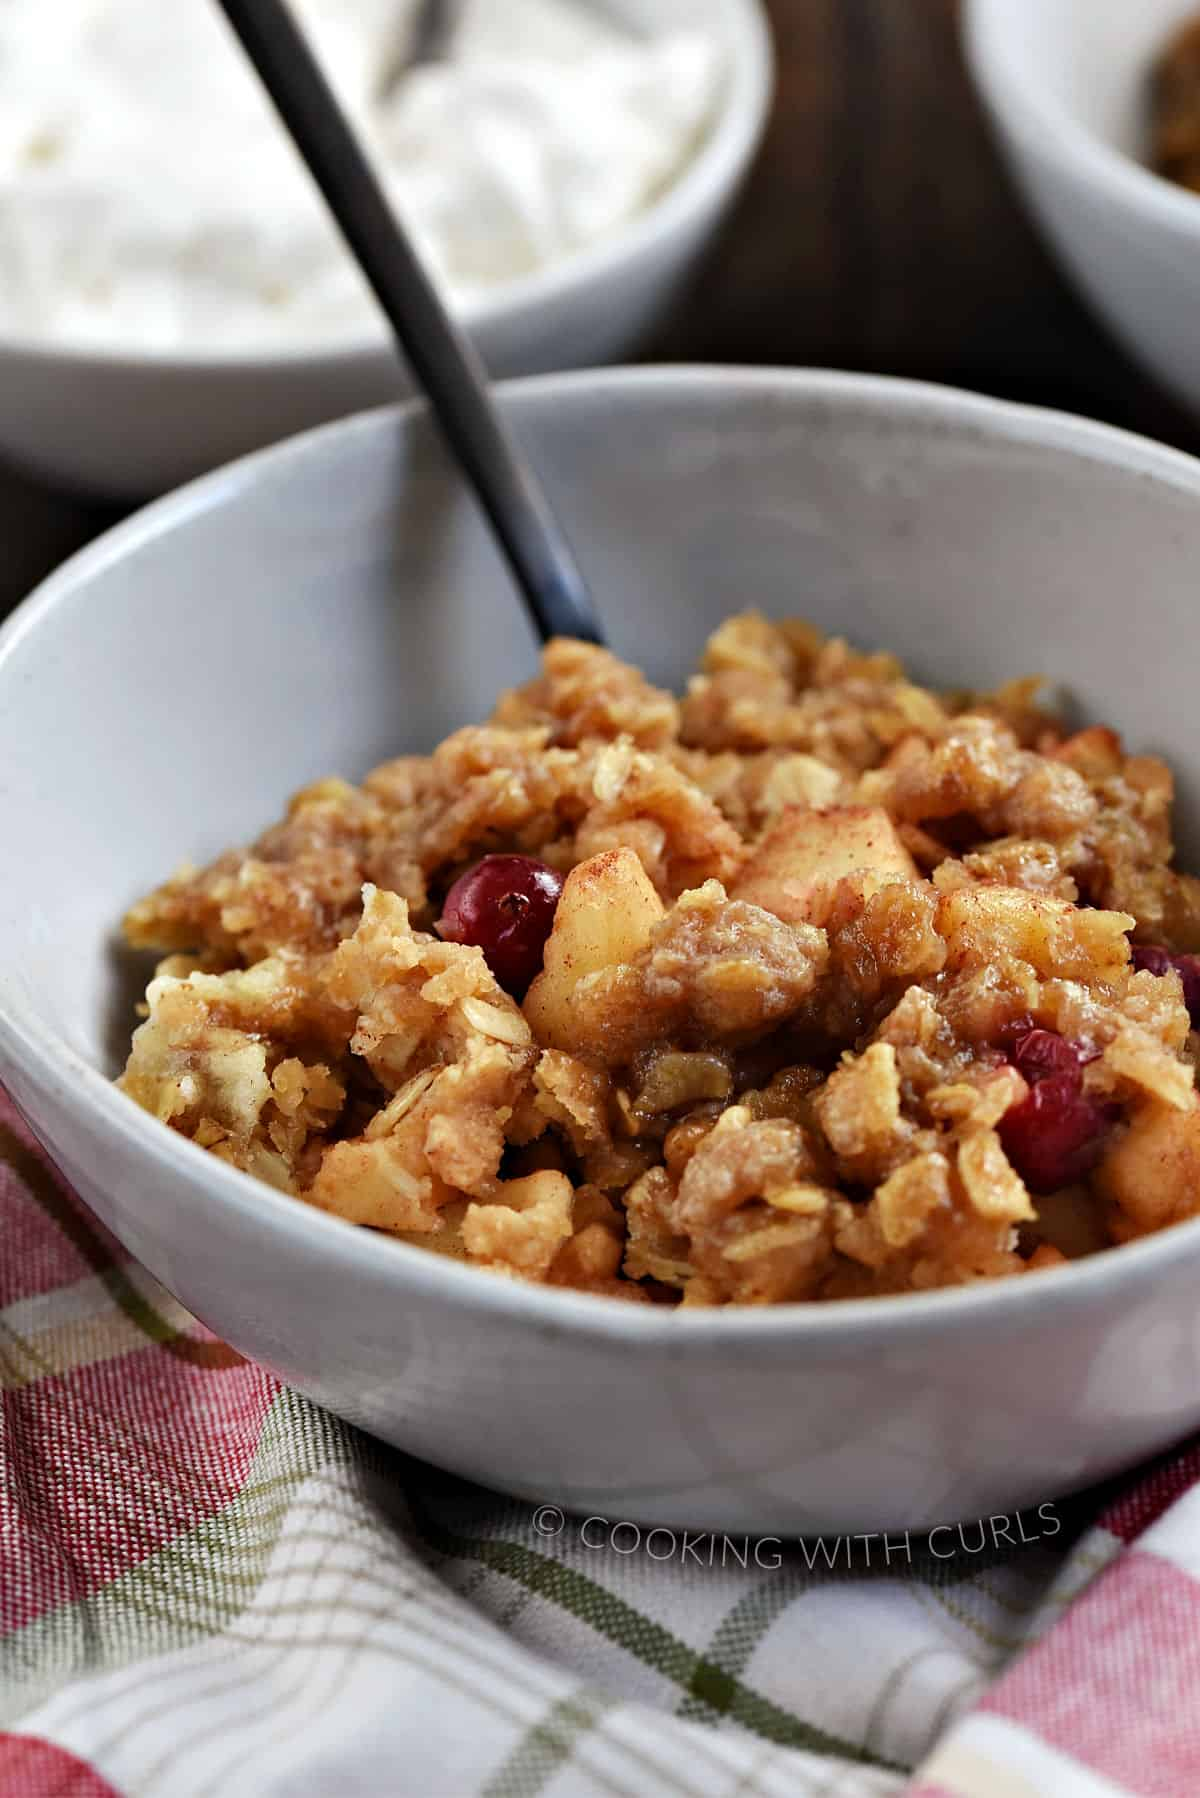 Close-up image of apple cranberry crisp in a bowl with a bowl of whipped cream in the background.